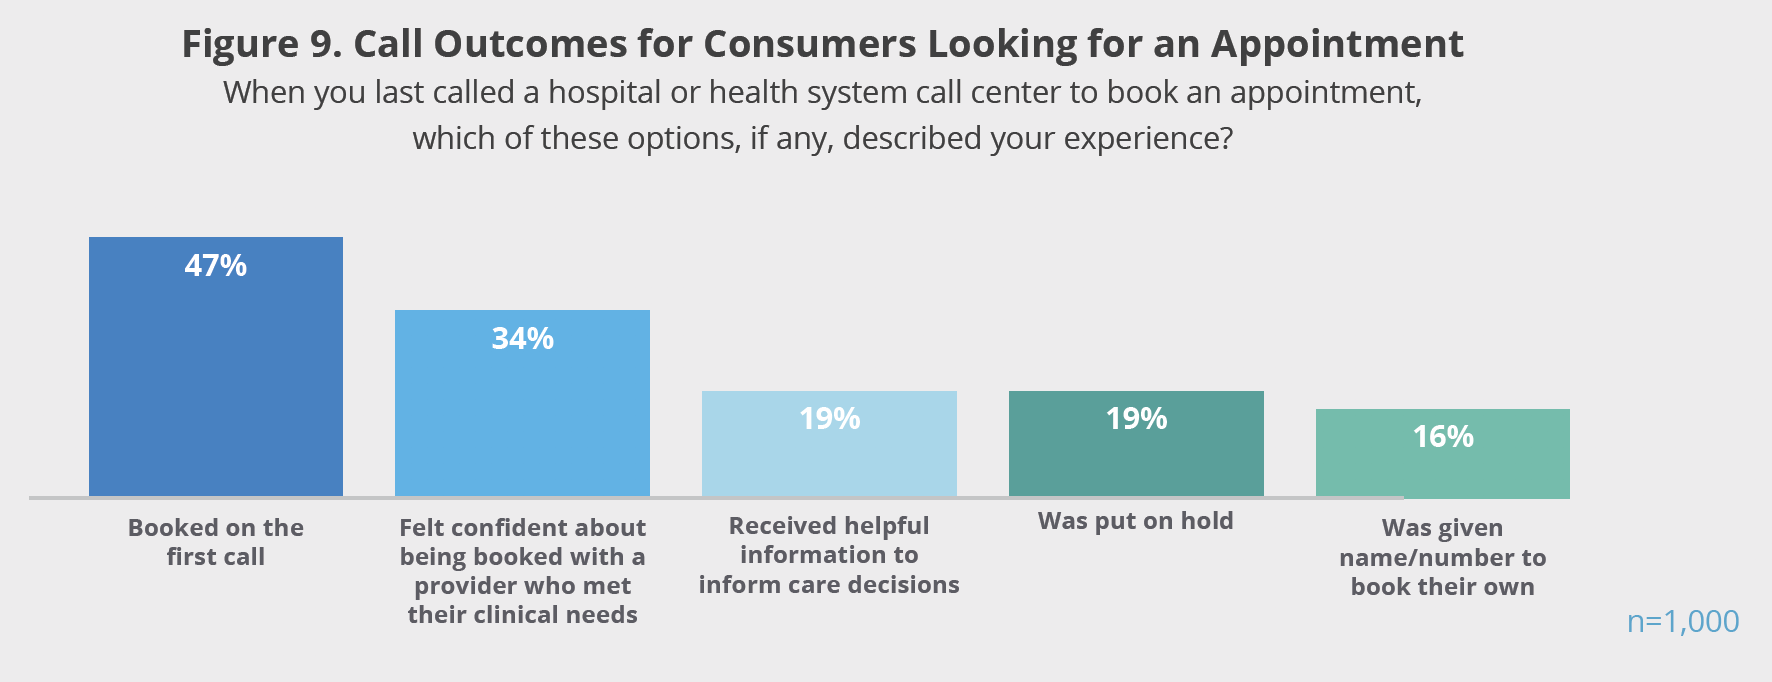 Figure 9. Call Outcomes for Consumers Looking for an Appointment